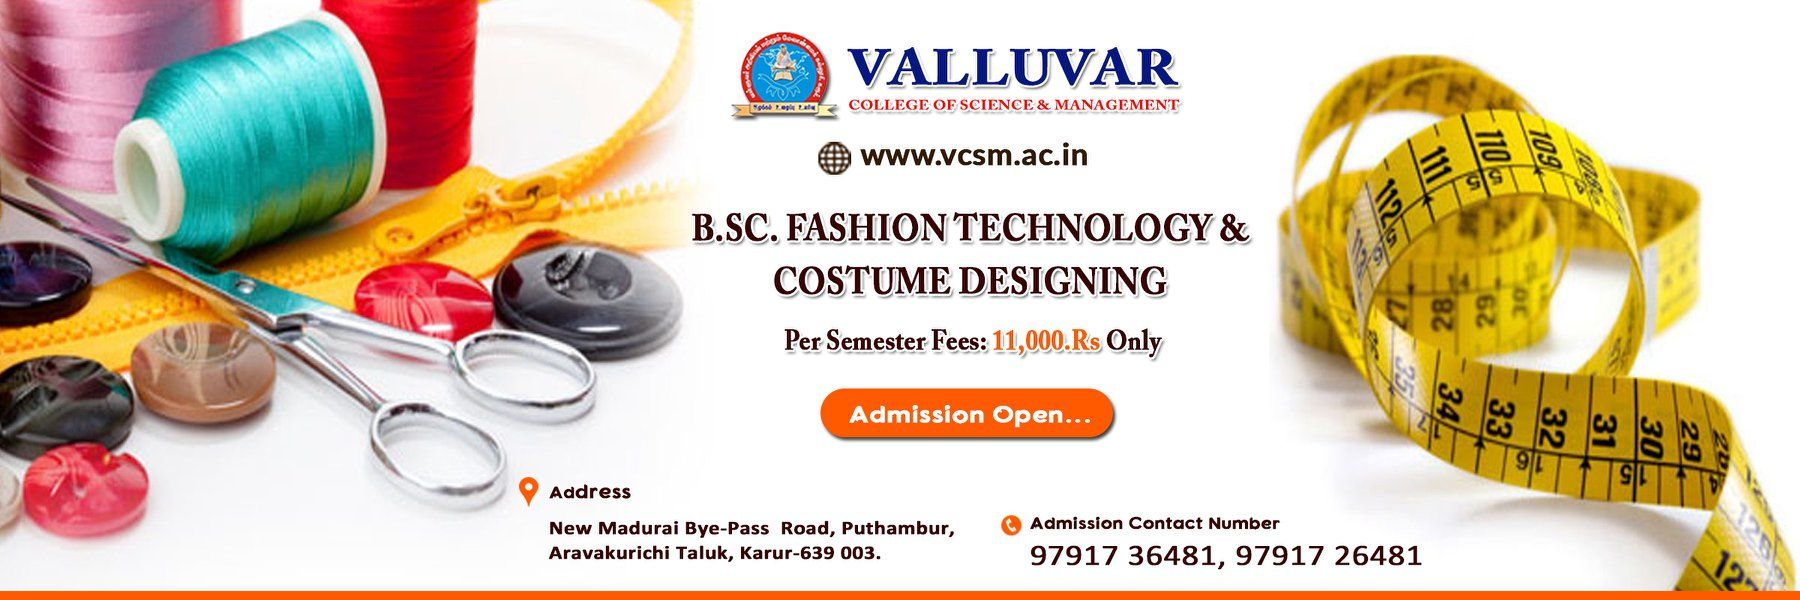 Best Science And Management In Karur Admission Going On For Bsc Fashion Technology And Costume Designing For Admission Conta Technology Fashion Karur Design